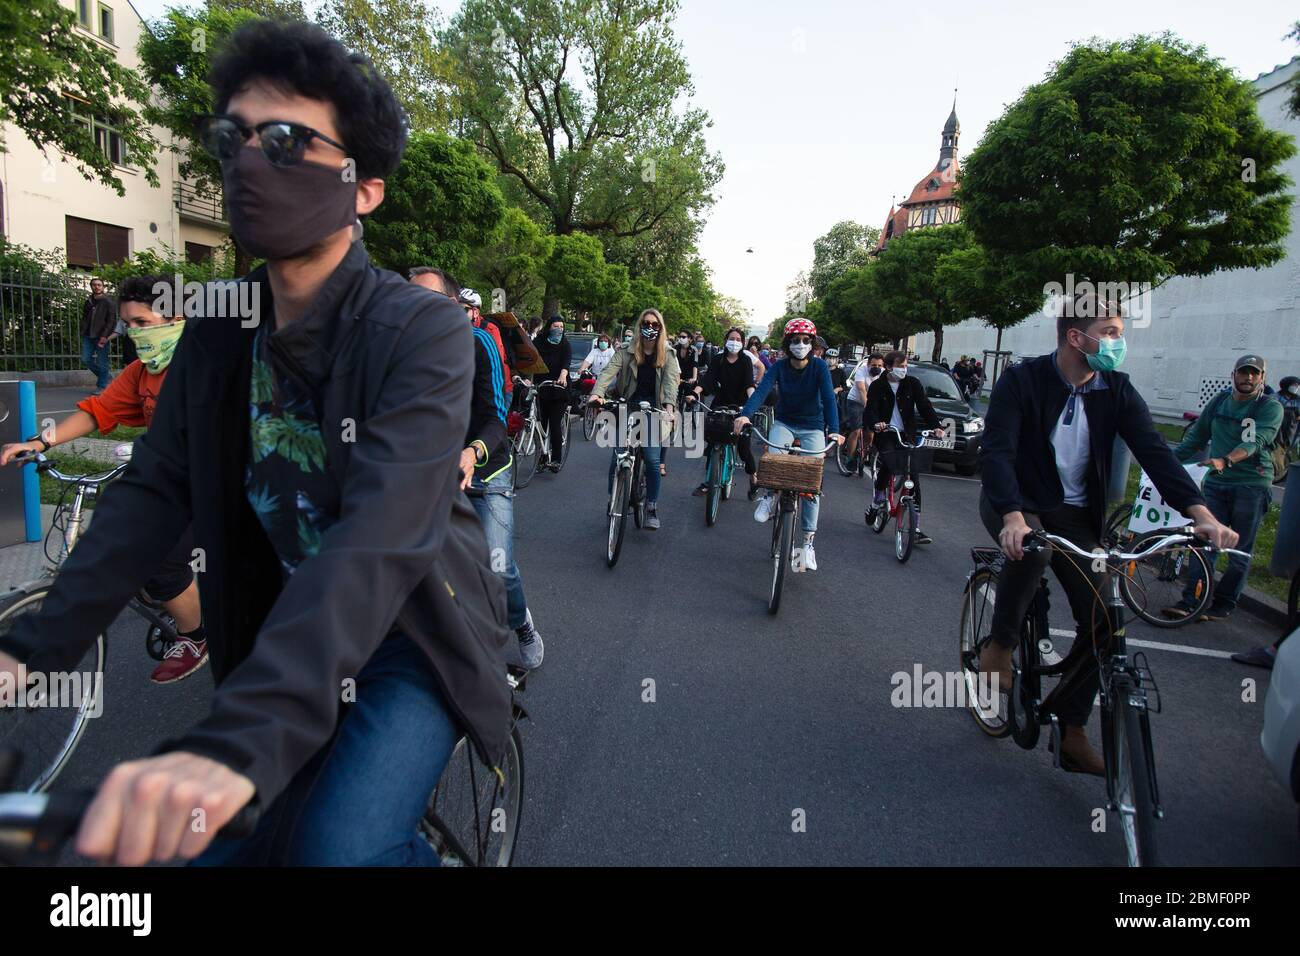 Ljubljana, Slovenia, May 8, 2020: Protesters wearing face masks as preventive measure ride their bicycles  during an anti-government protest amid the coronavirus crisis. Following whistleblower's revelations of corruption in the government of Janez Janša and accusations of its undemocratic rule over five thousand people rode bicycles around government buildings in sign of protest. Stock Photo